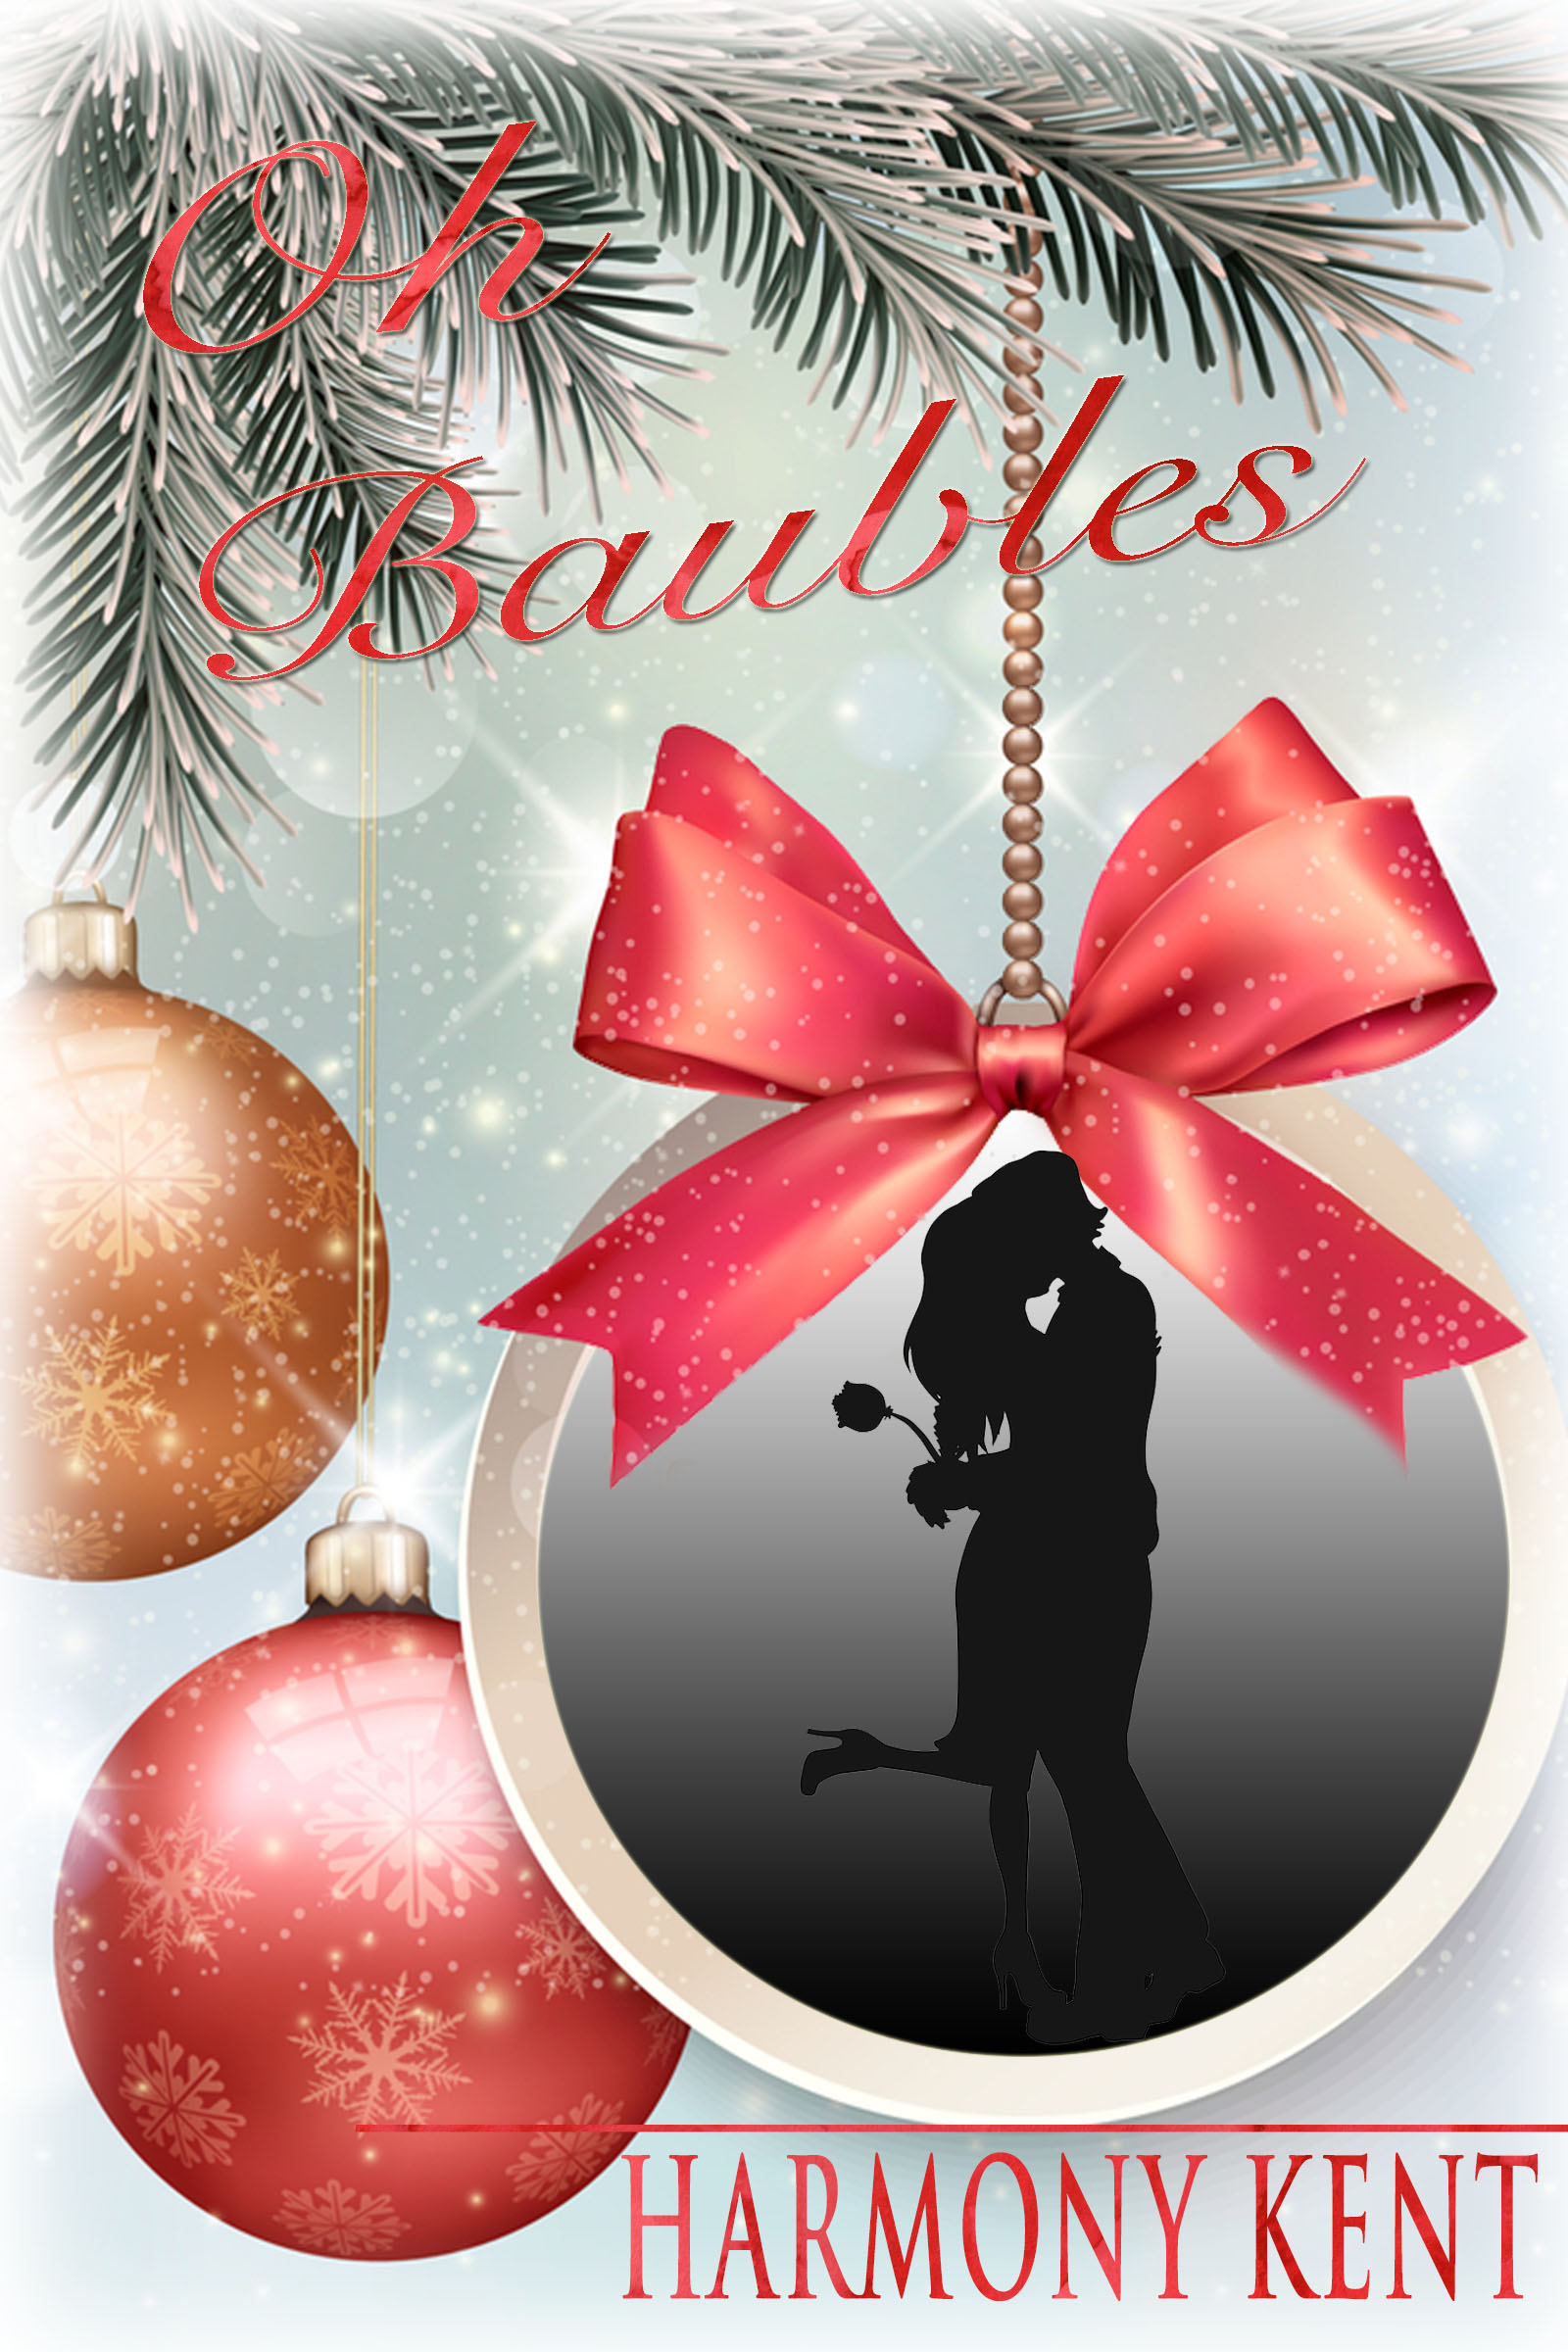 Book cover for Oh, Baubles, a Christmas romance novella by Harmony Kent shows Christmas bulbs with silhouette of embracing couple in a large bulb topped by a red bow